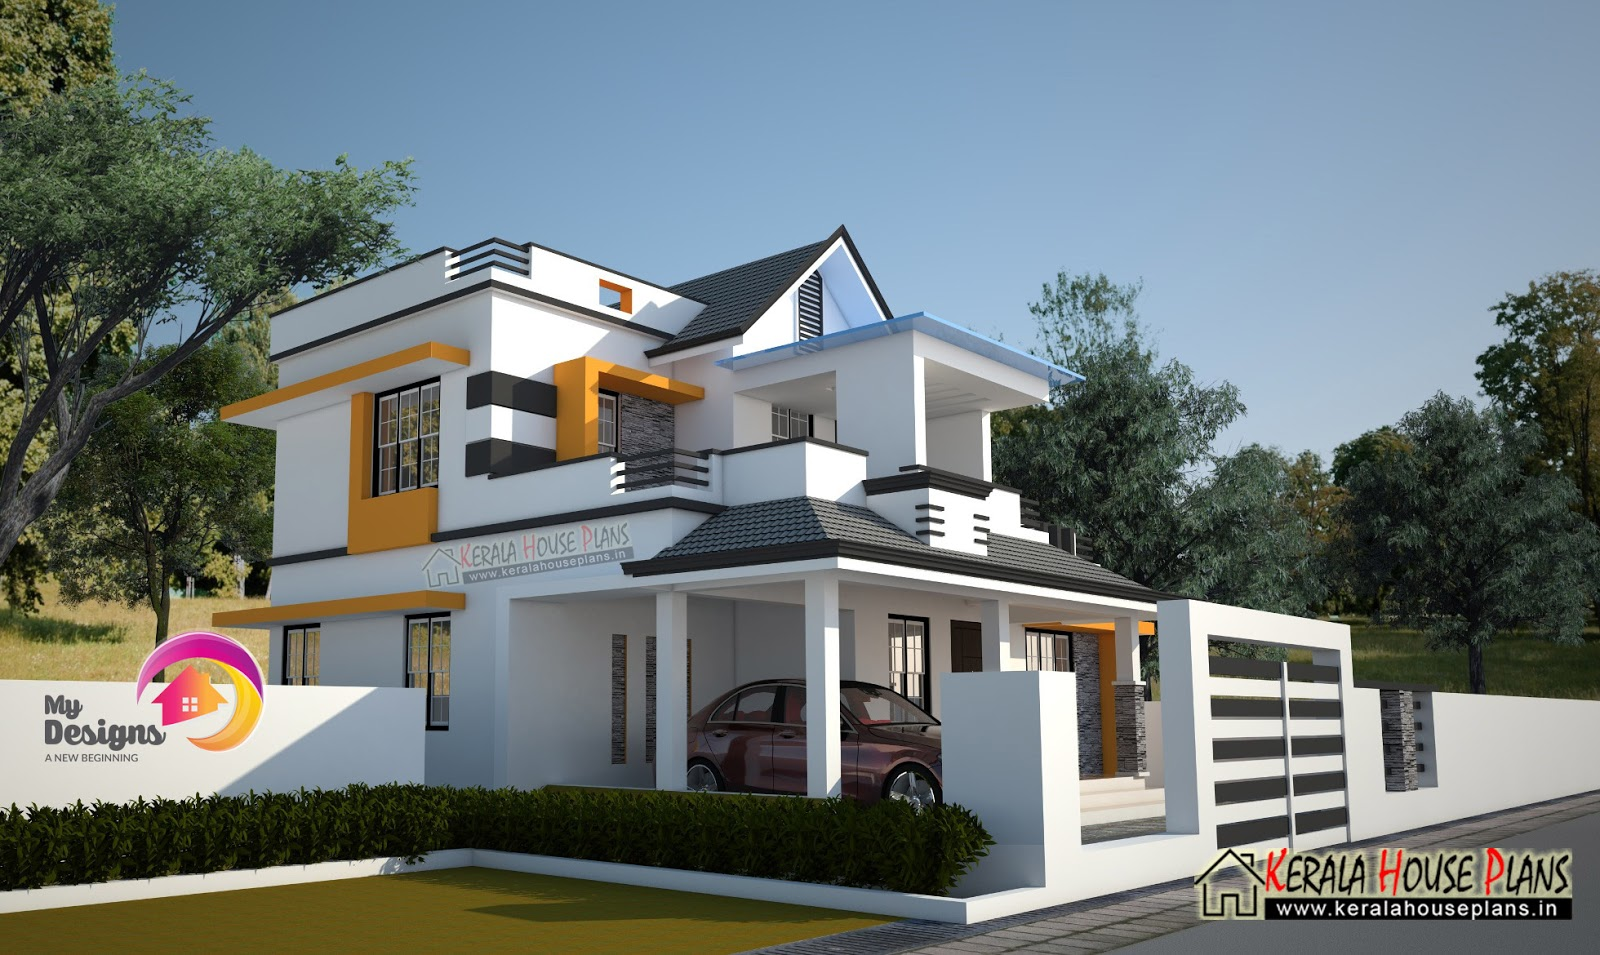 3 bedroom 2 story house design kerala house plans for Designer house plans